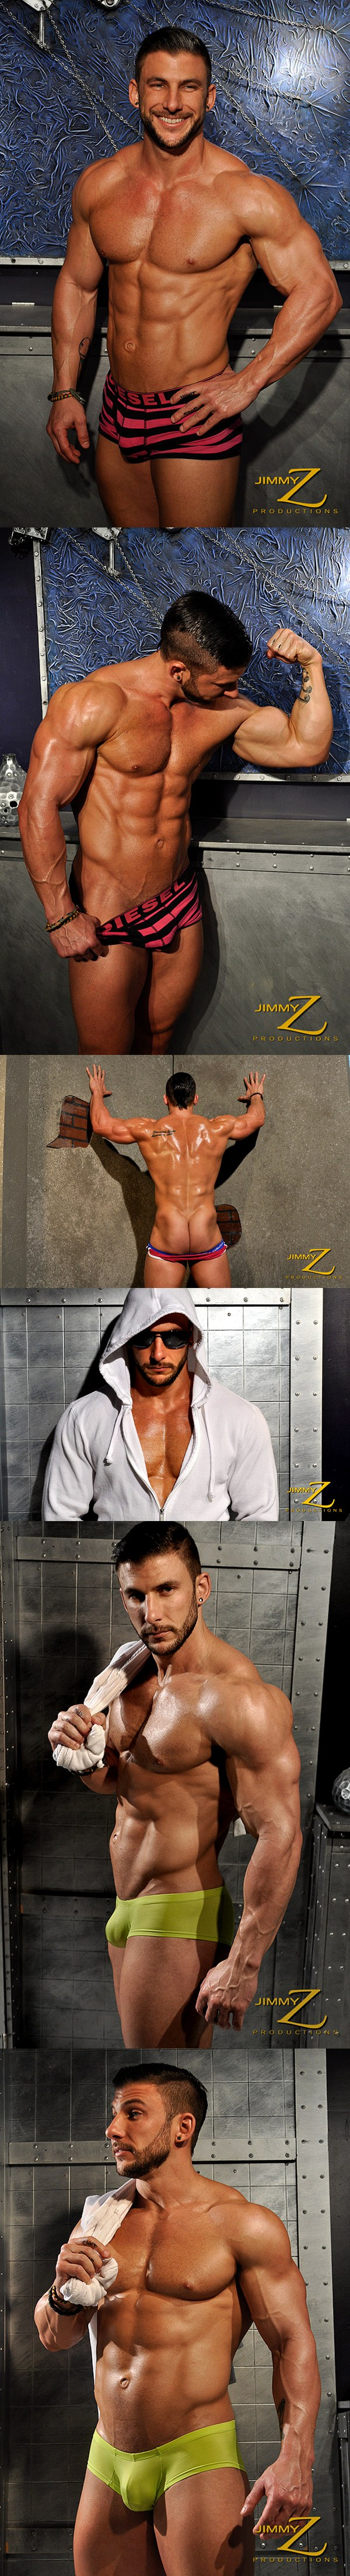 Handsome ripped Ryan Monroe flexing, posing, sexy talk in Physique Interview Part 1 at Jimmyzproductions 01